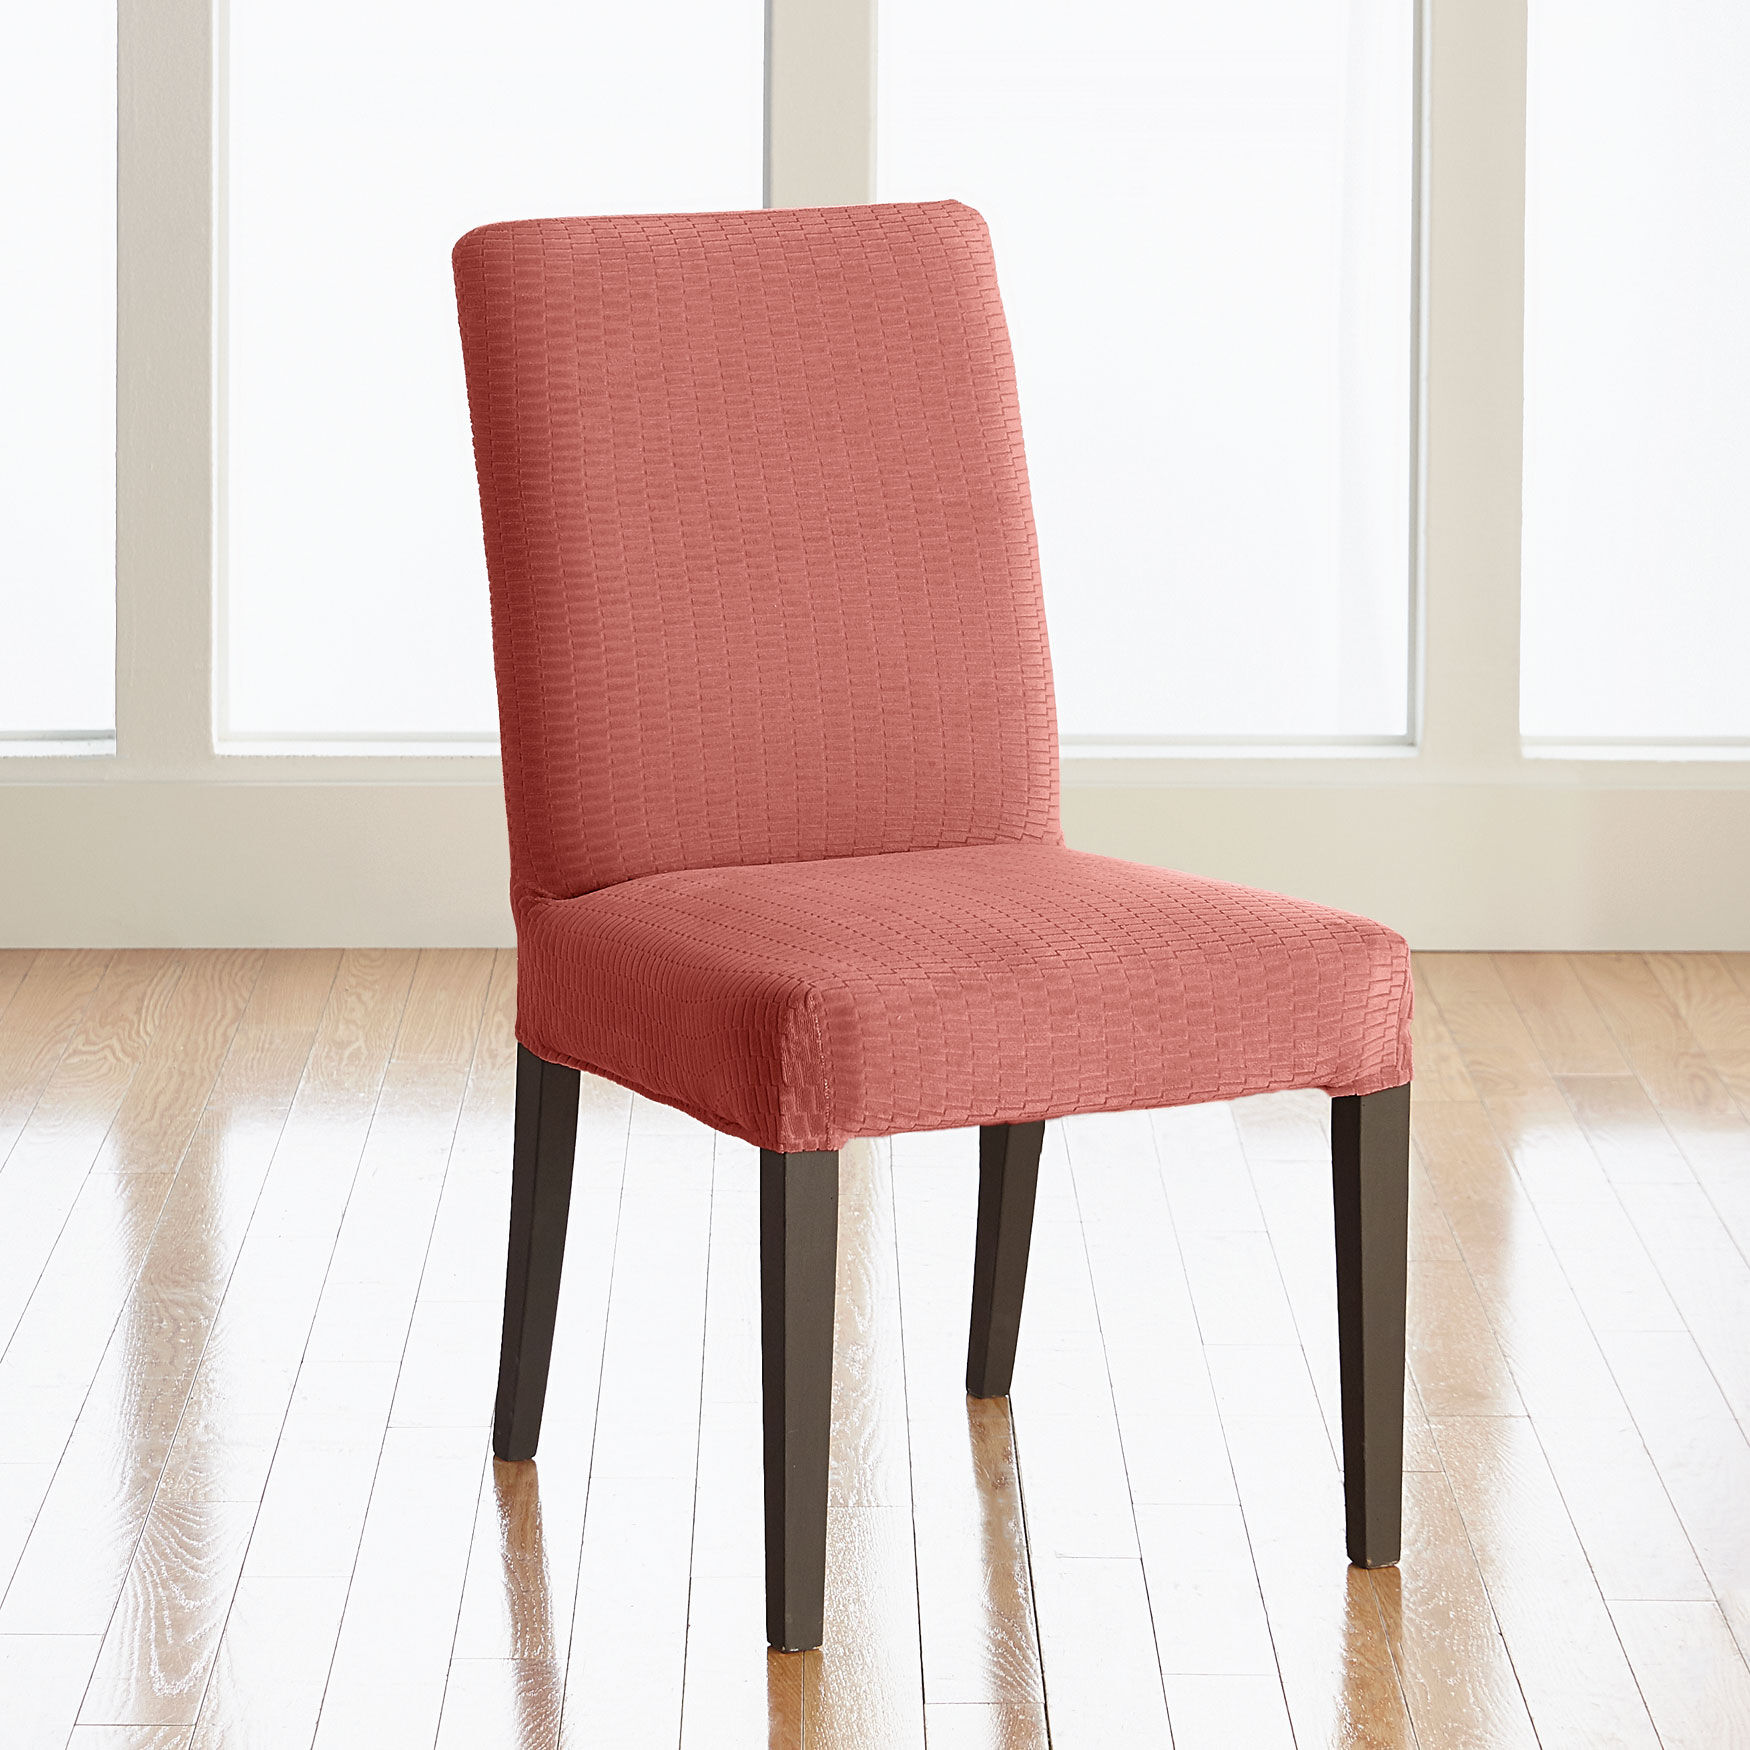 brylanehome chair covers pride lift parts canada dining room chairs slipcovers brylane home bh studio brighton slipcover